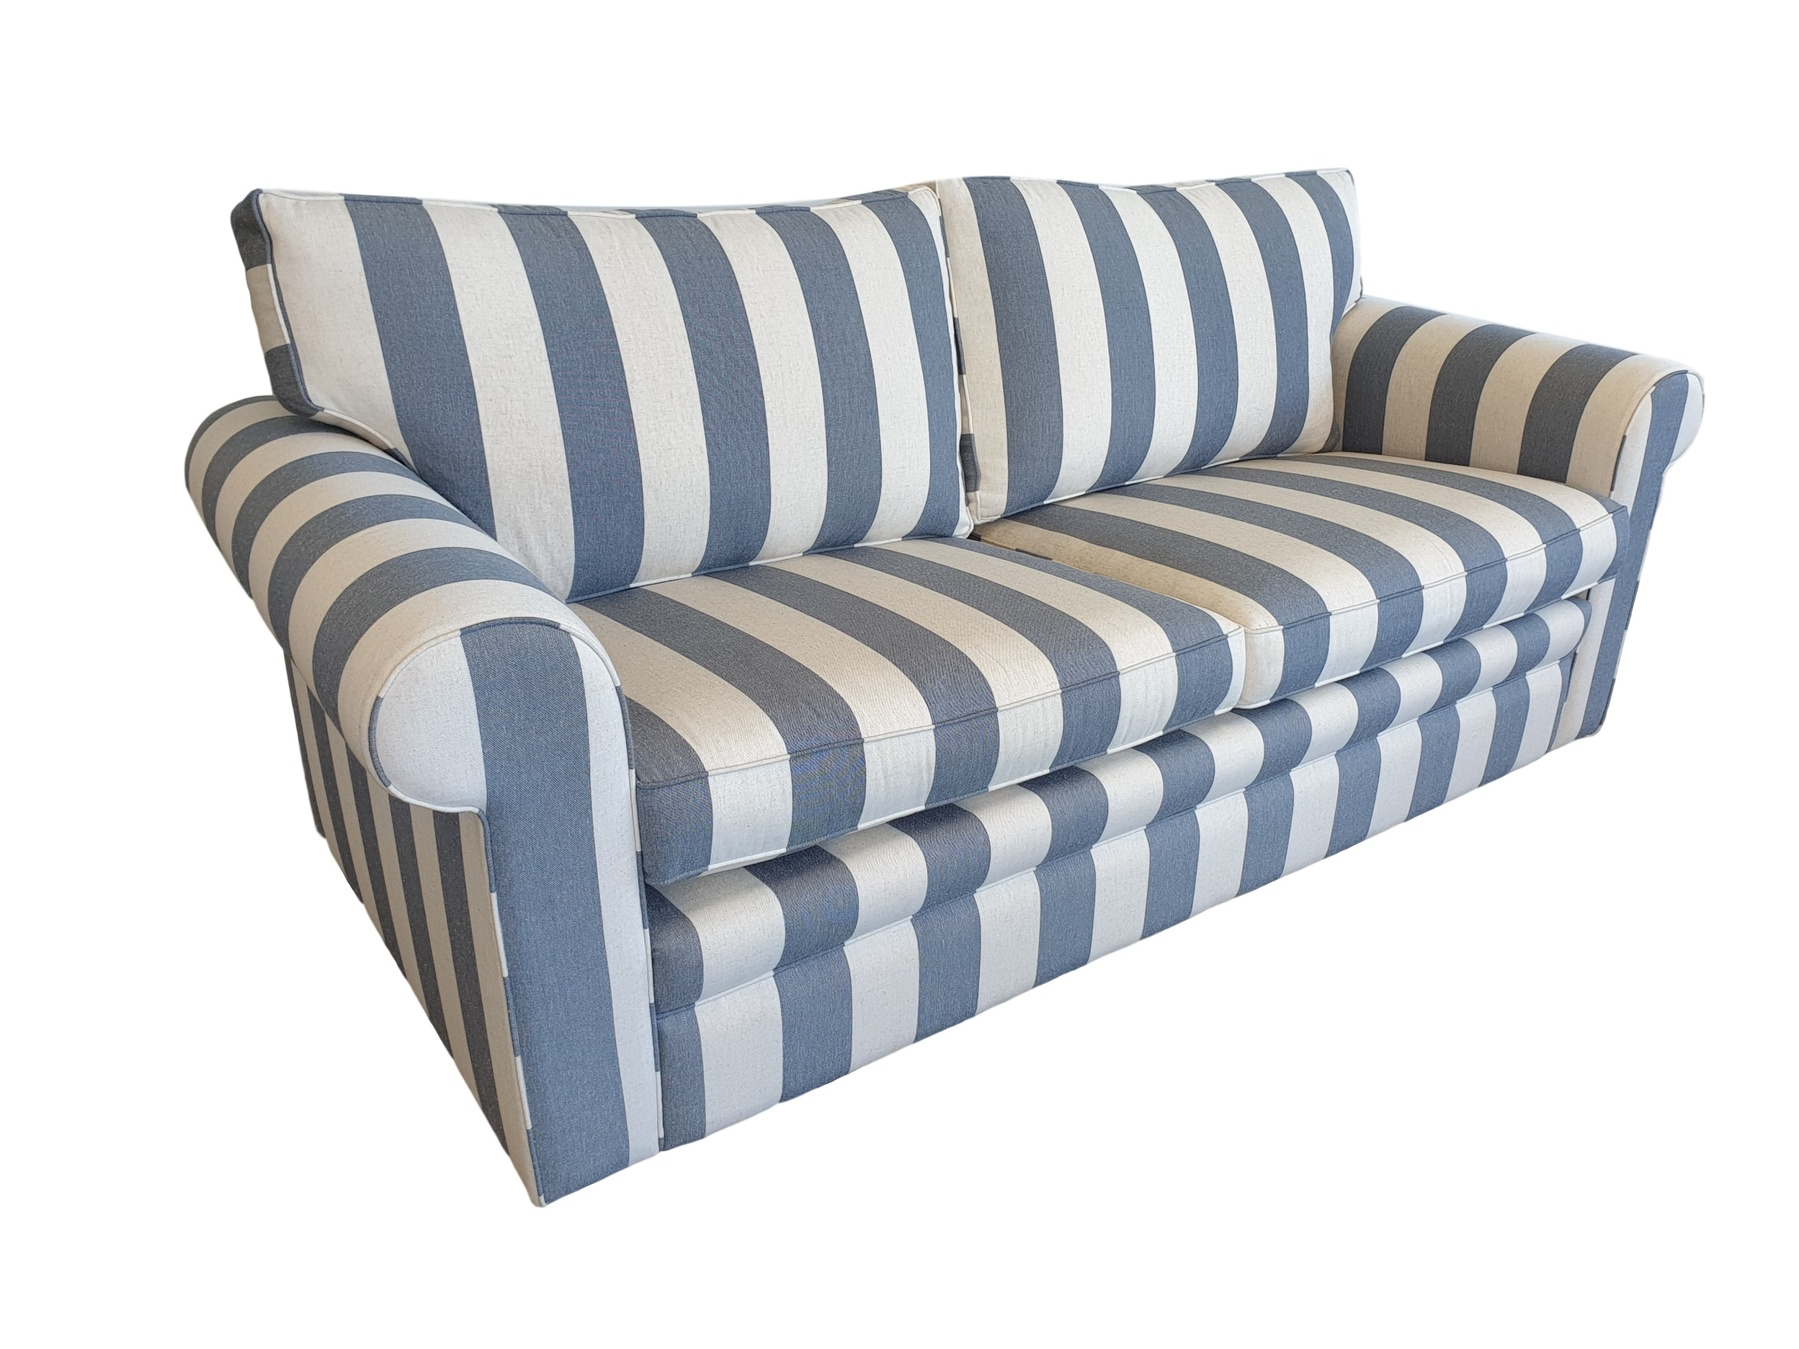 Pace Bel Air sofa with Rolled Arm